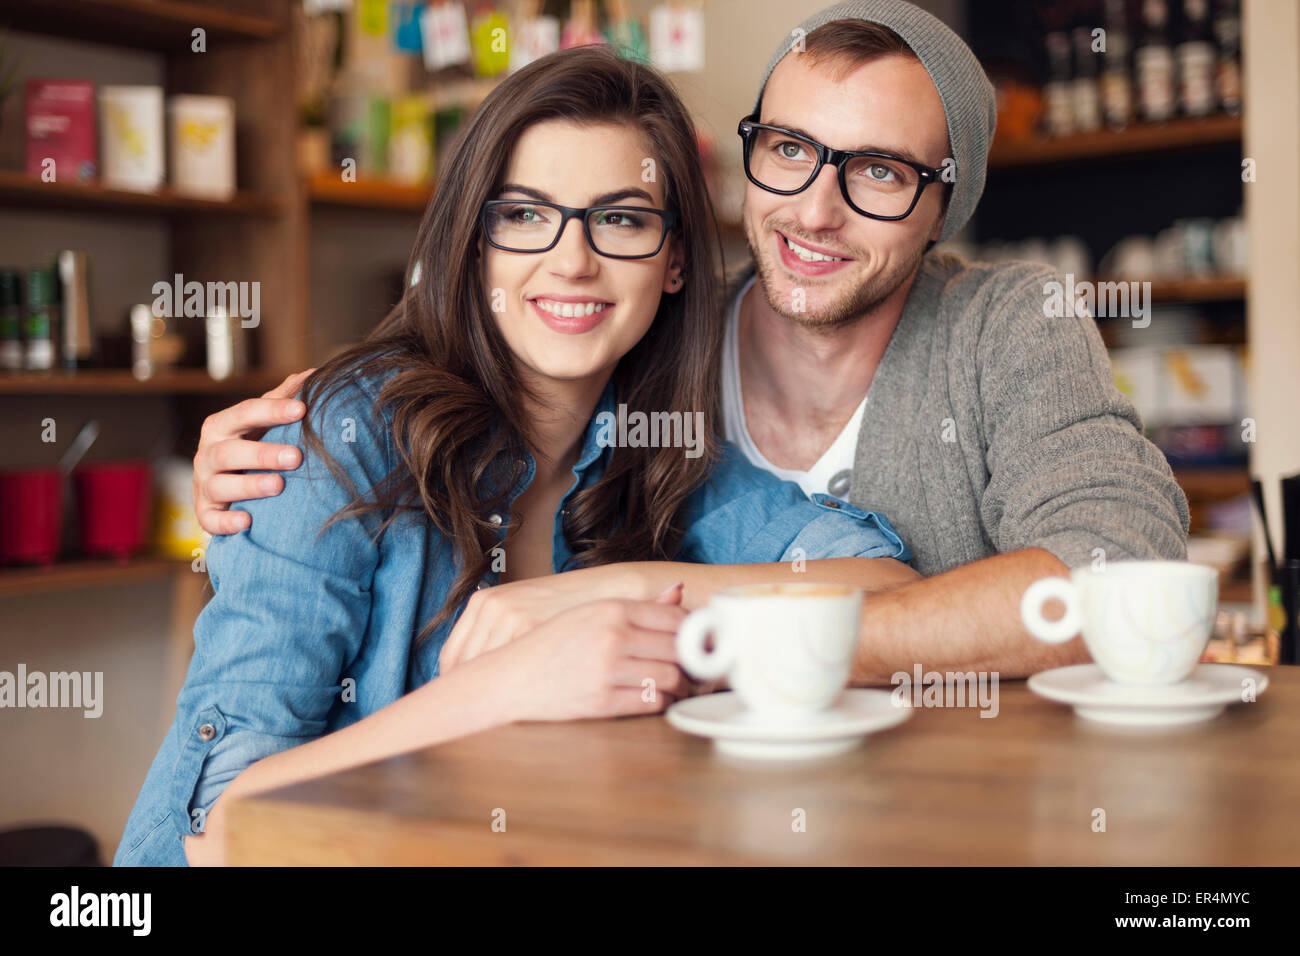 Embracing couple spending together at cafe. Krakow, Poland - Stock Image